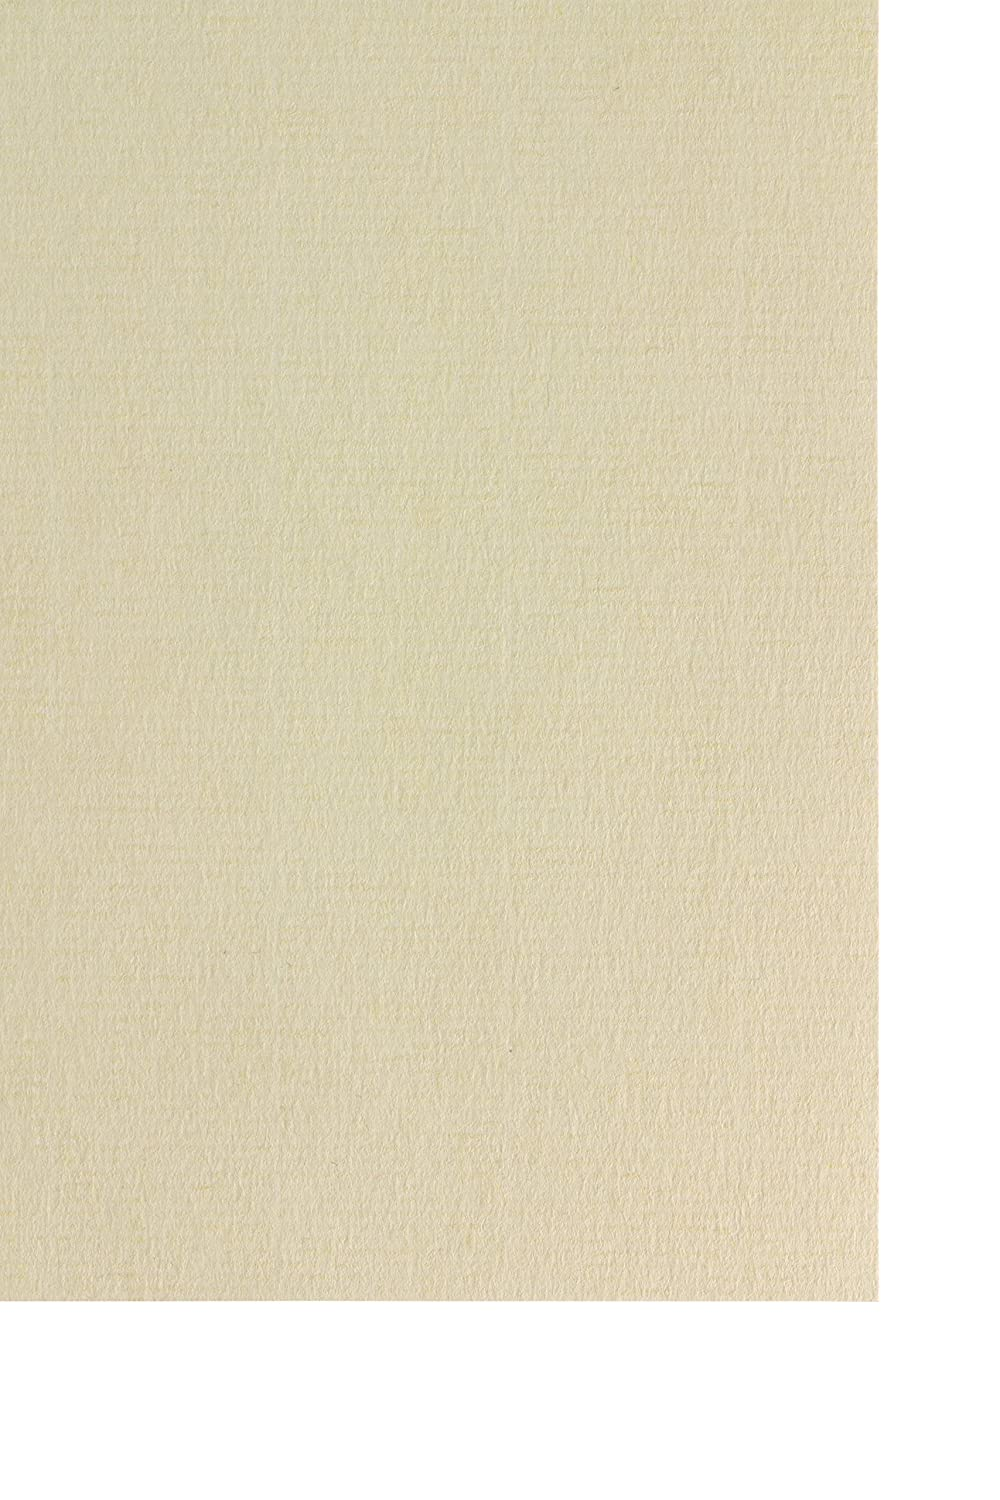 Fabriano Ingres A4 Sand 160gsm Double Sided Pastel Paper 30 Sheets Twin Texture